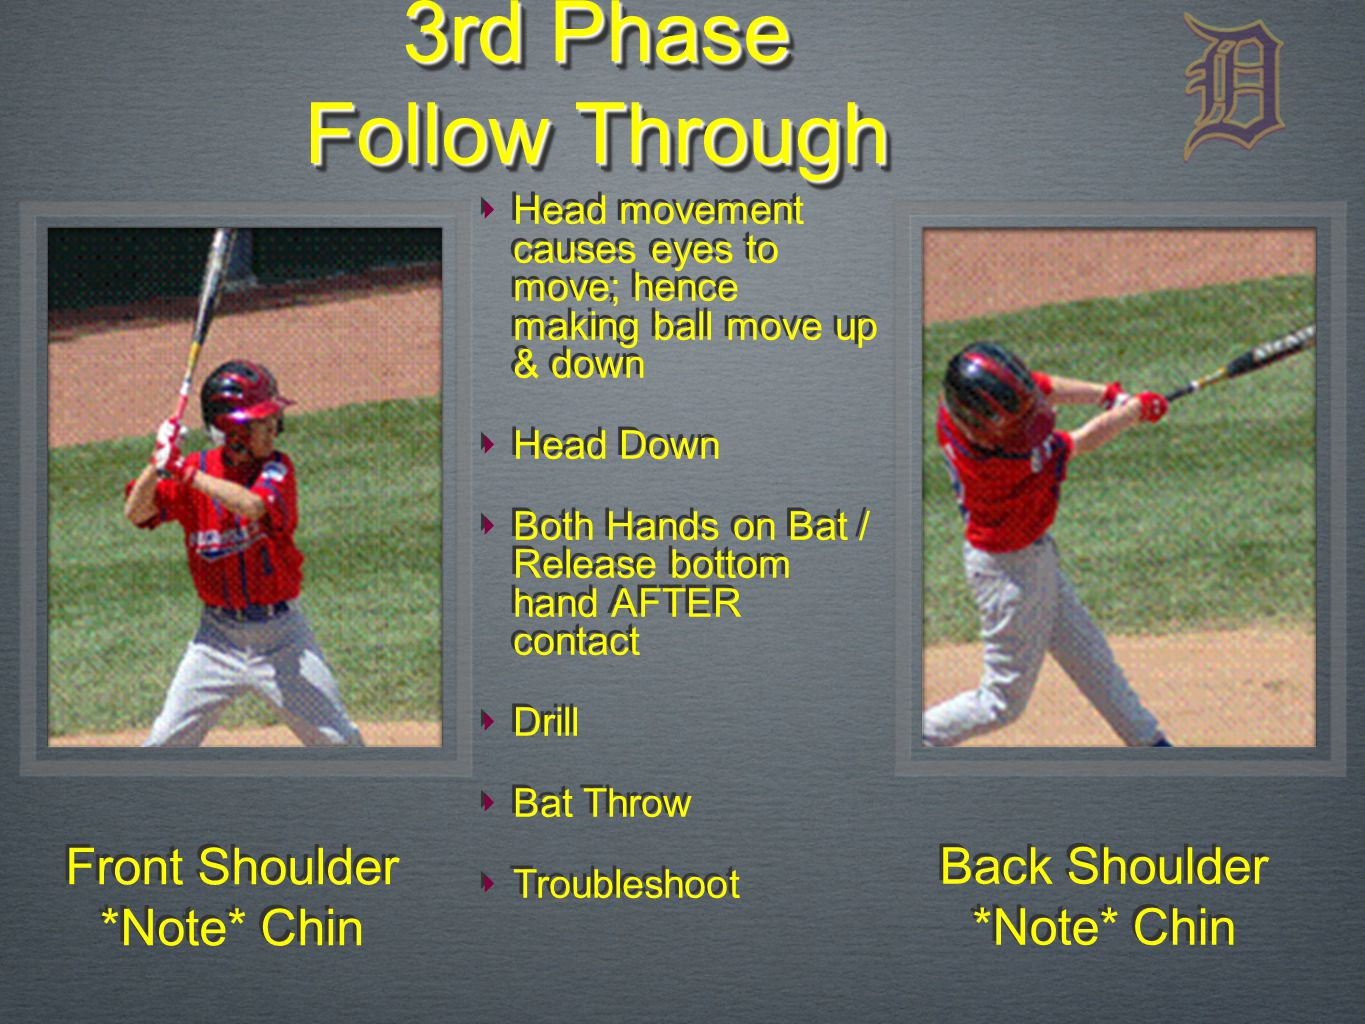 Front Shoulder *Note* Chin Front Shoulder *Note* Chin 3rd Phase Follow Through Back Shoulder *Note* Chin Back Shoulder *Note* Chin ‣ Head movement causes eyes to move; hence making ball move up & down ‣ Head Down ‣ Both Hands on Bat / Release bottom hand AFTER contact ‣ Drill ‣ Bat Throw ‣ Troubleshoot ‣ Head movement causes eyes to move; hence making ball move up & down ‣ Head Down ‣ Both Hands on Bat / Release bottom hand AFTER contact ‣ Drill ‣ Bat Throw ‣ Troubleshoot